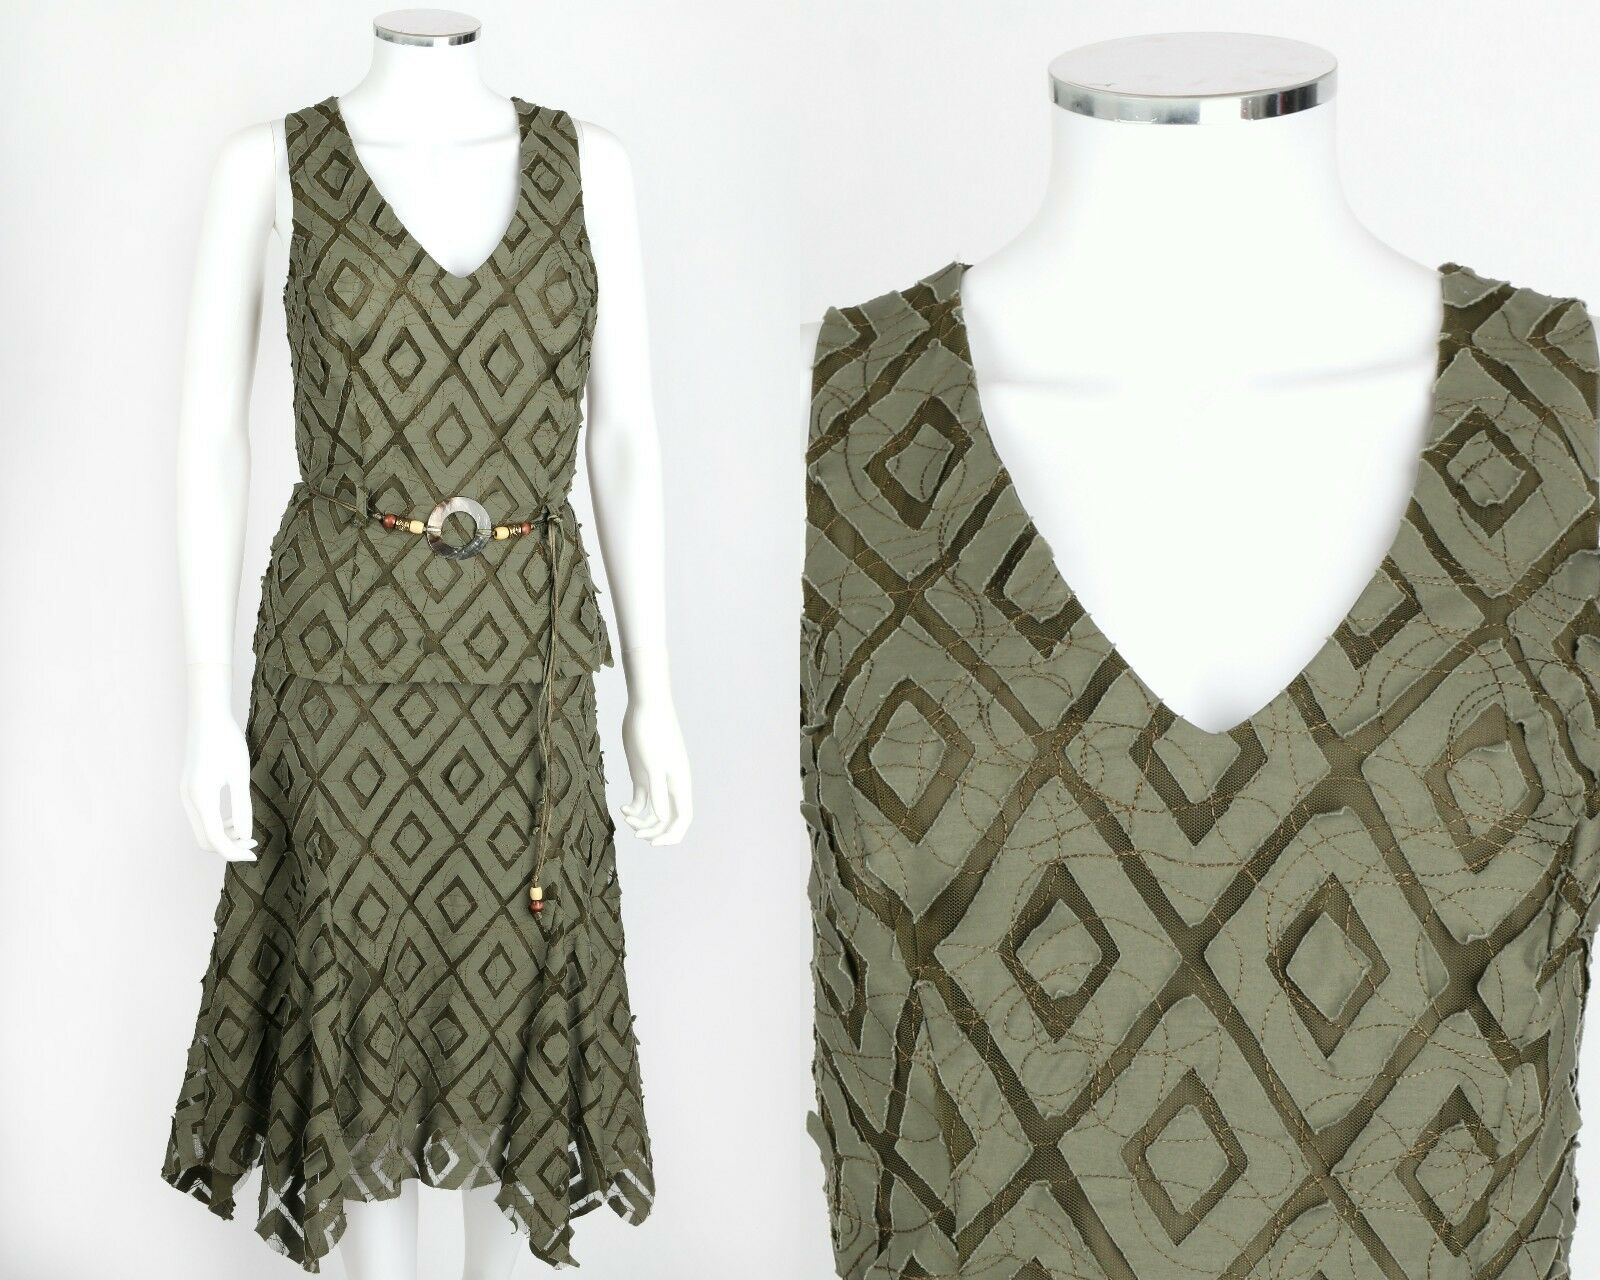 FRANK LYMAN DESIGN 2 PC GREEN EMBROIDERED NET SLEEVELESS TOP SKIRT BELT SET 8 10